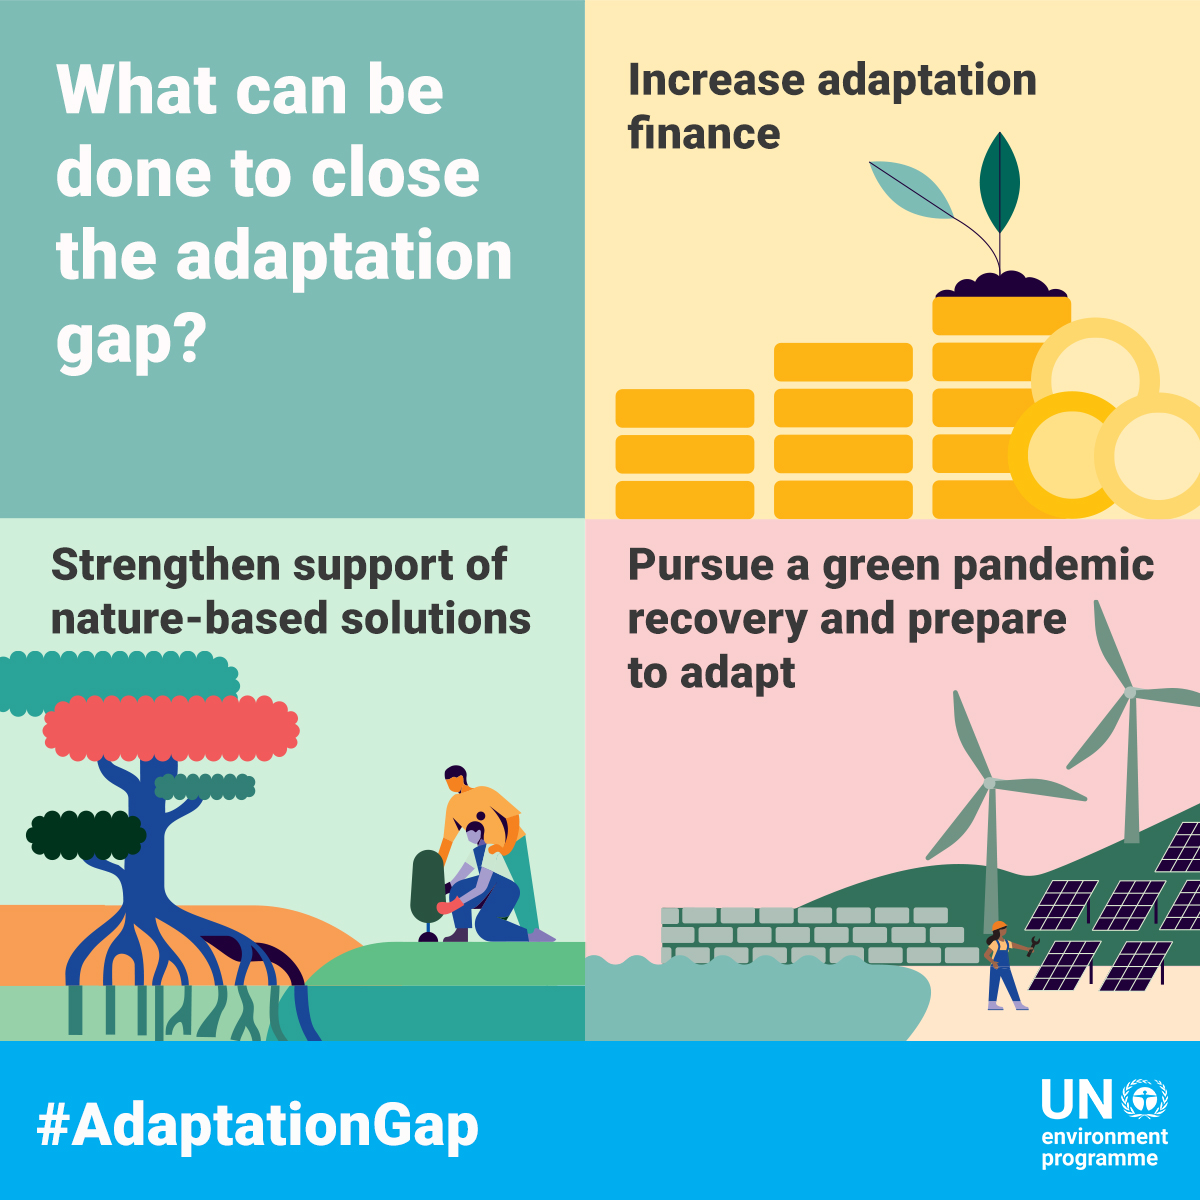 We need bold ACTION to close the #AdaptationGap, from embracing the power of nature to pursuing a green recovery from #COVID19.   Learn more:   #ClimateAction